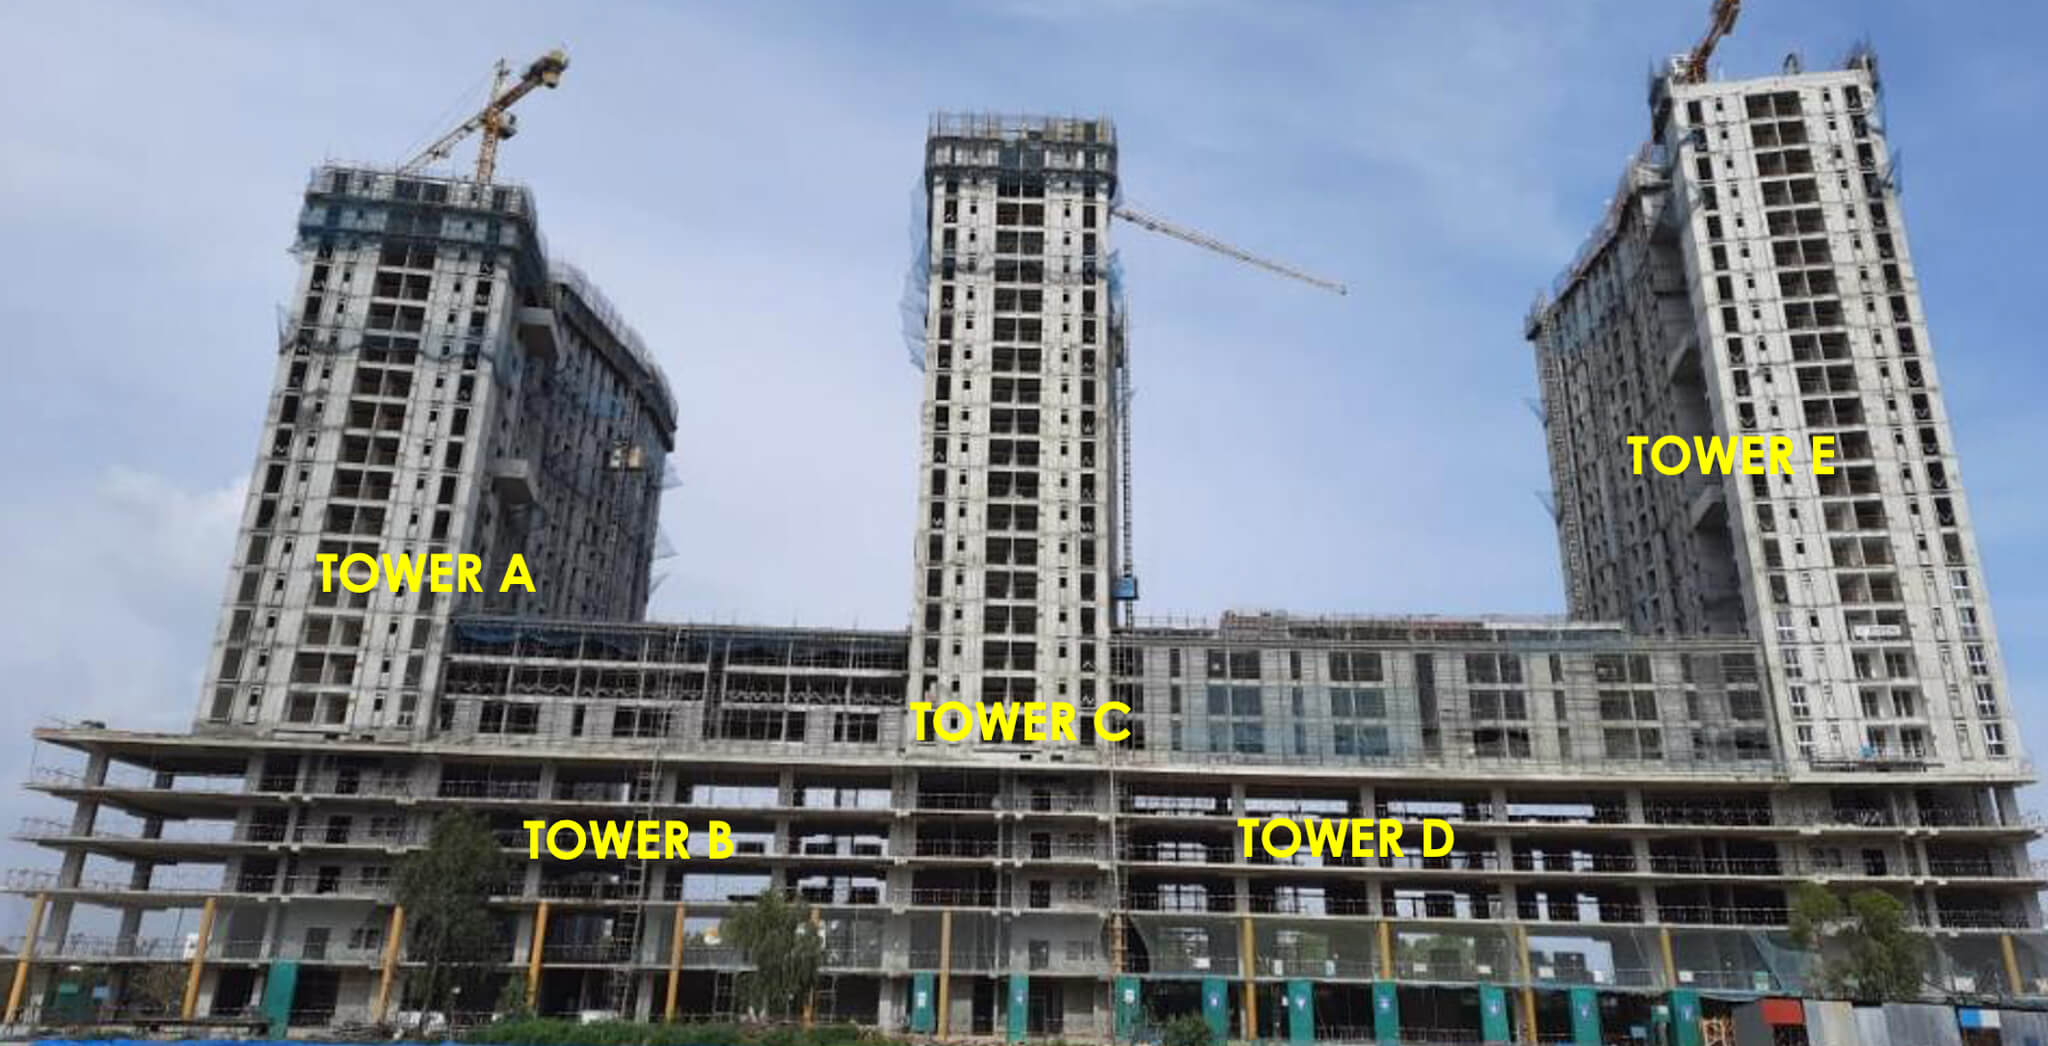 Aug 2021 - Eden Tower A: 23rd & 25th Floor structure works in progress. Eden Tower C: Terrace Floor structure works in progress. Other Towers Terrace Floor structure works completed